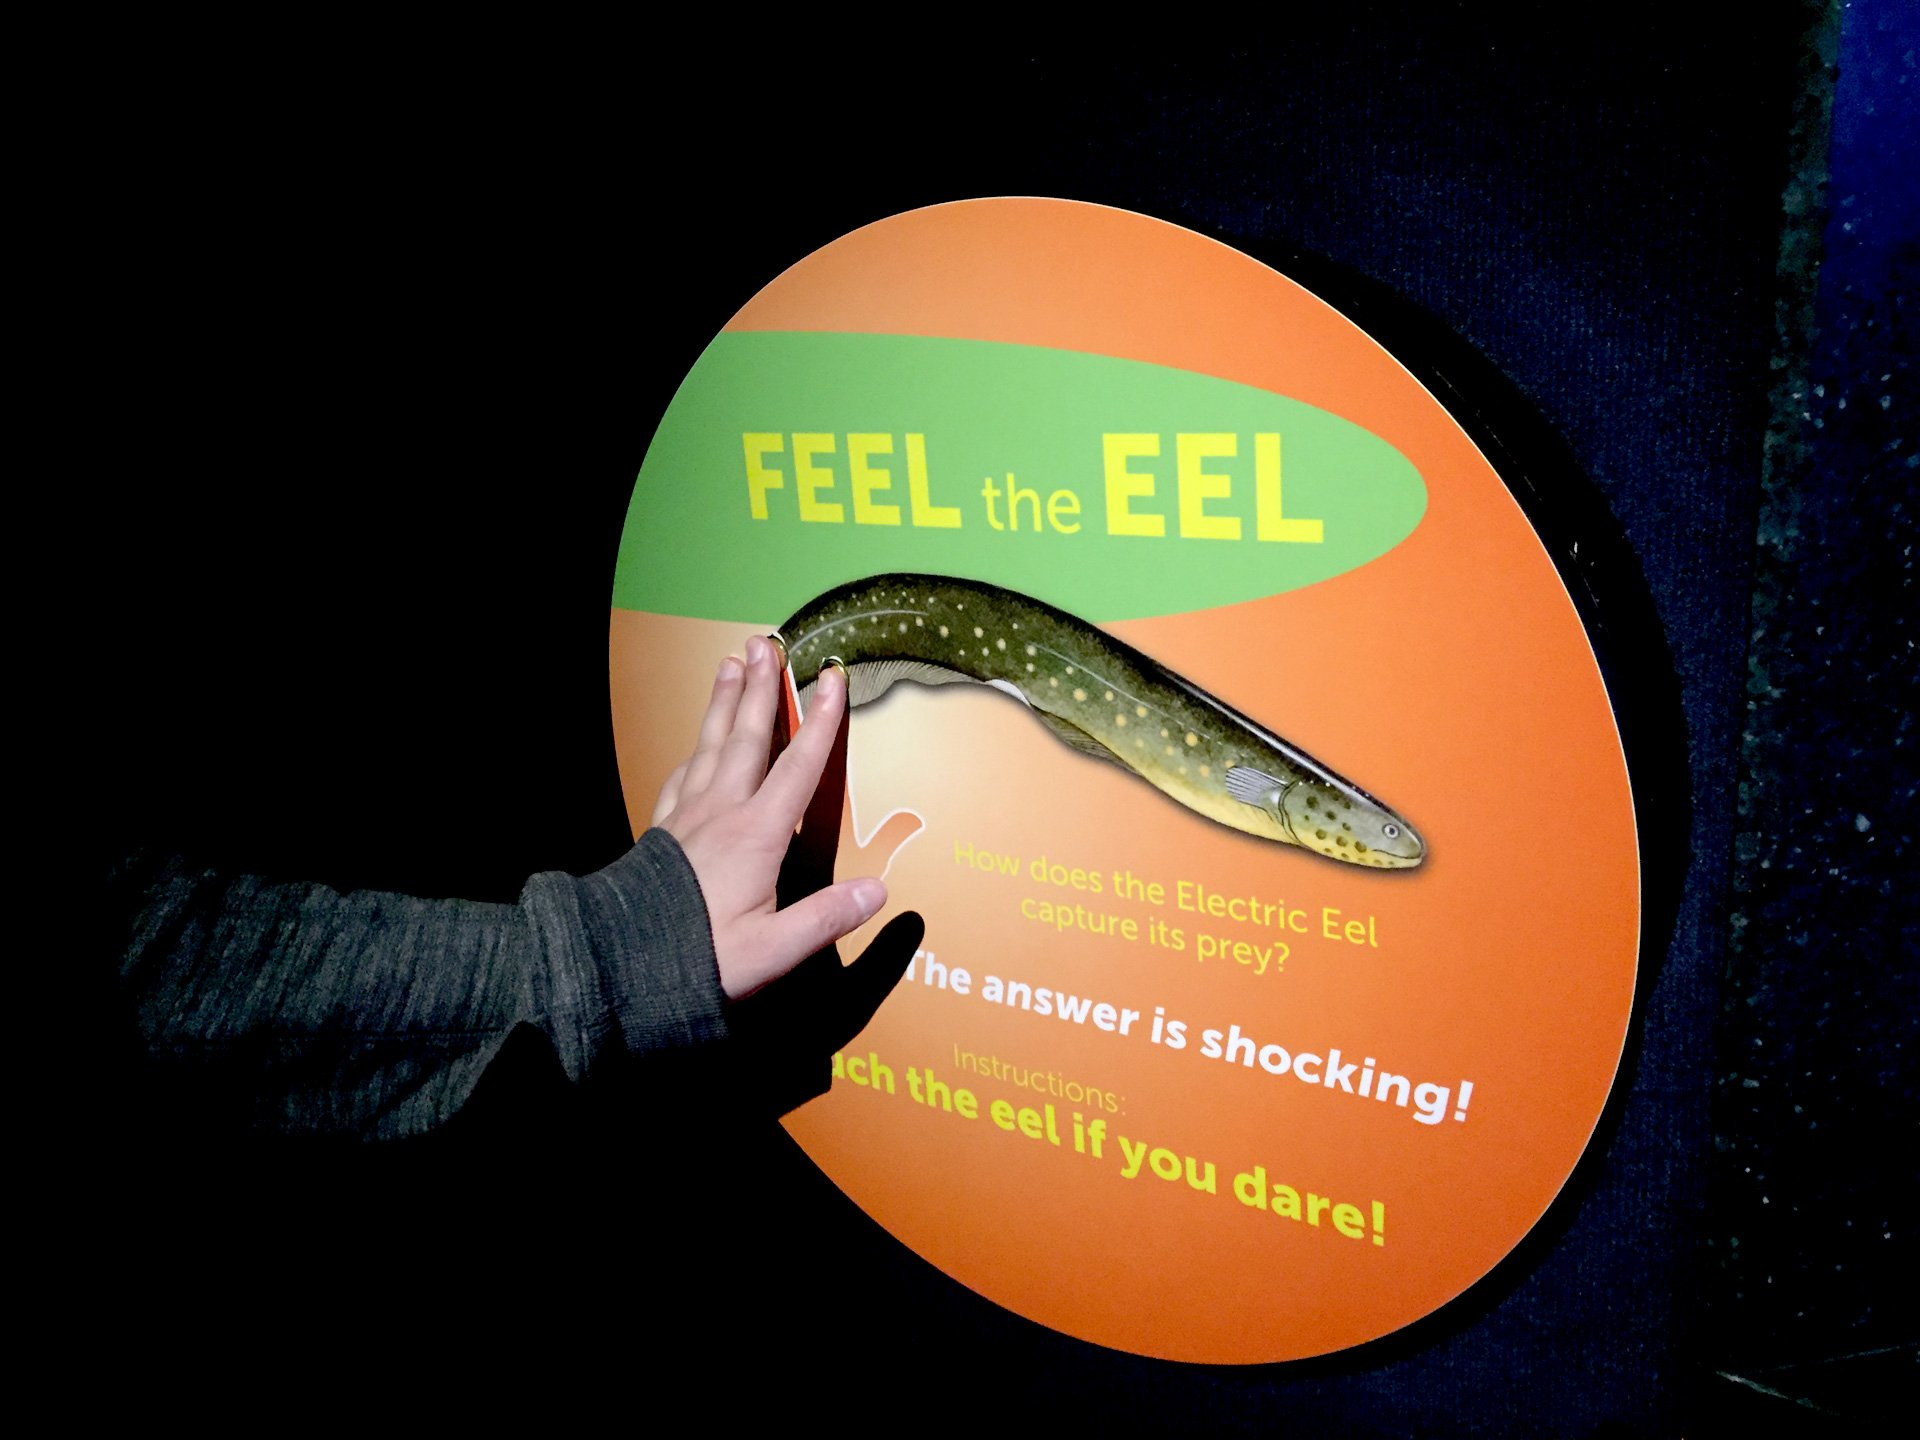 The electric eel demonstration was a crowd favorite